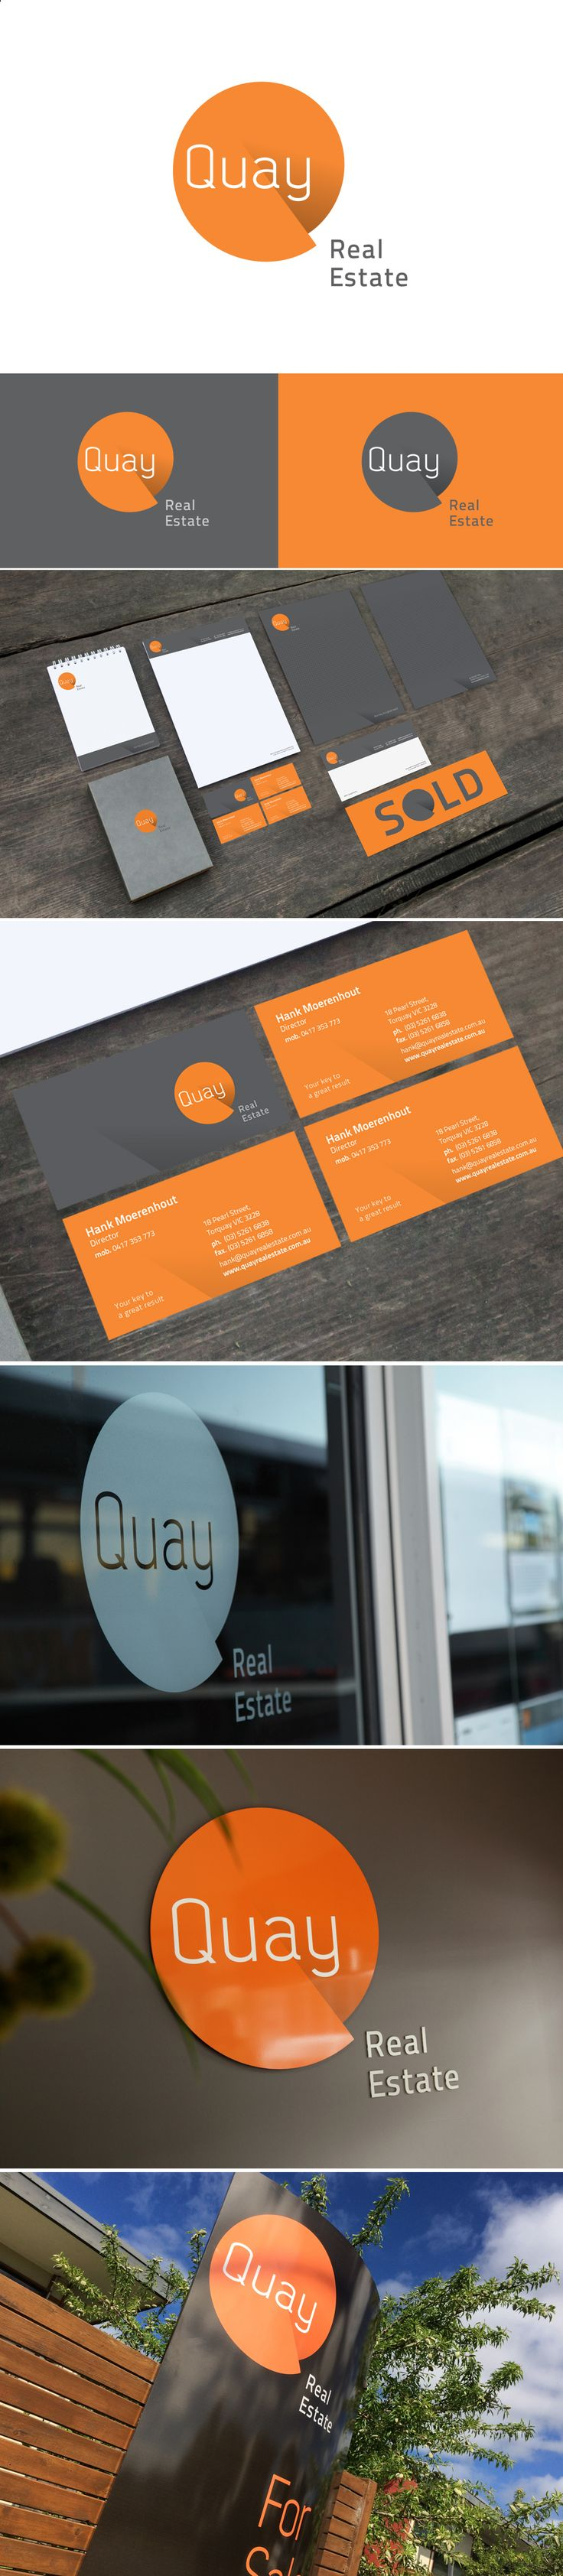 Quay Real Estate brand identity included, stationery, brochure, advertisement template and signage.